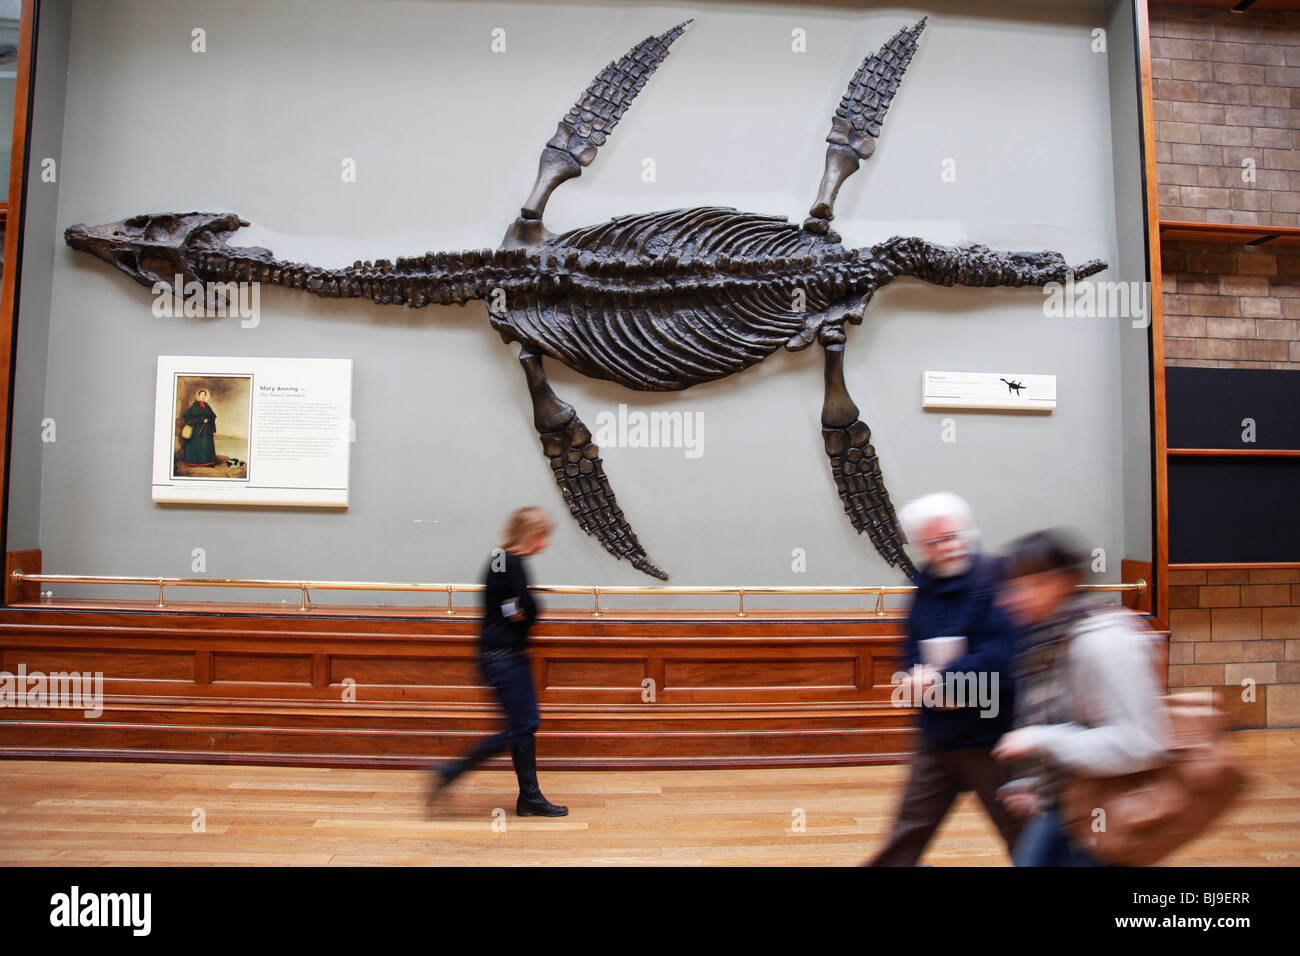 The Natural History Museum, London. Giant fossil of a Pliosaur adorns the wall. - Stock Image